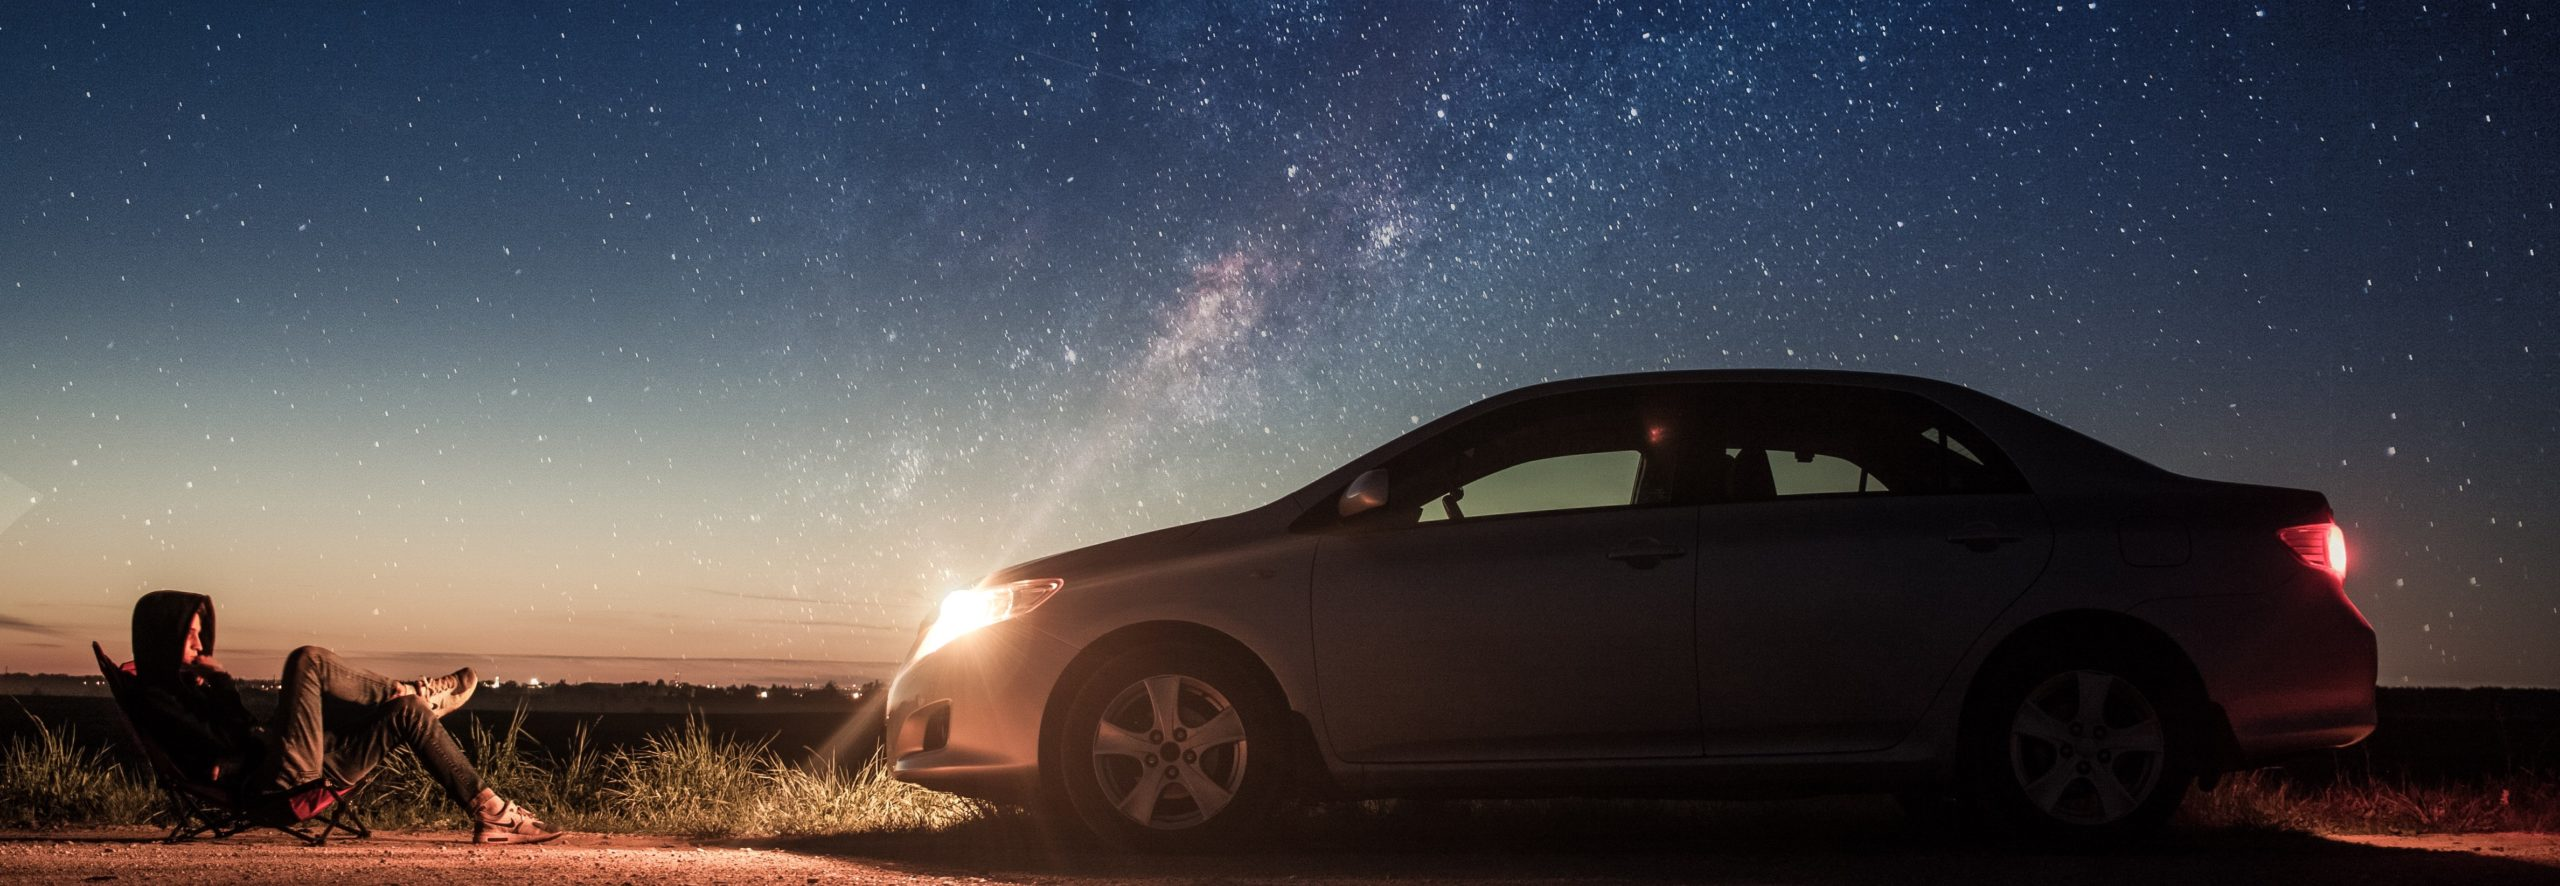 night sky, car with lights on - Joyride Car Rental